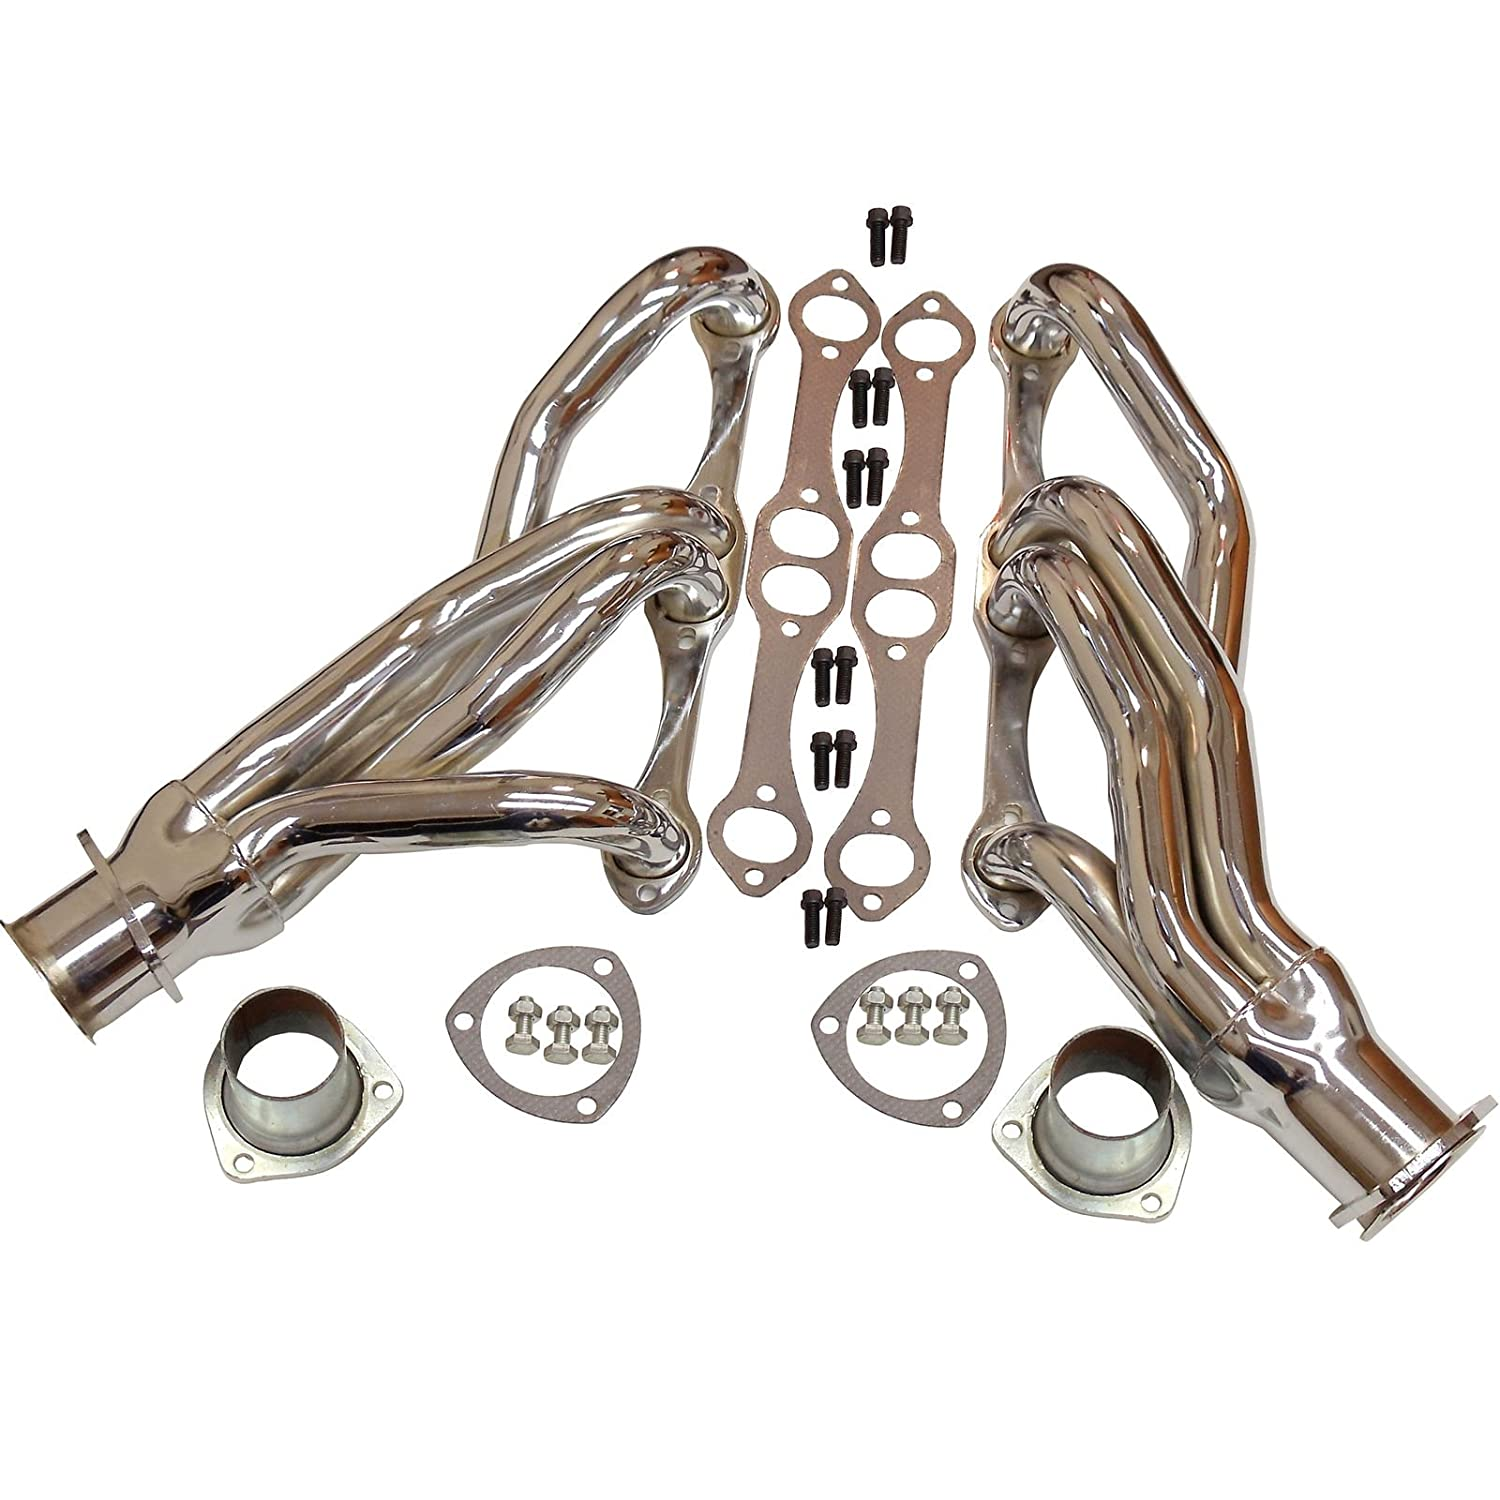 Ceramic Coated CLIPSTER HEADERS FOR SBC CHEVY V8 A/F/G BODY ROD 262 305 327 350 DEMOTOR